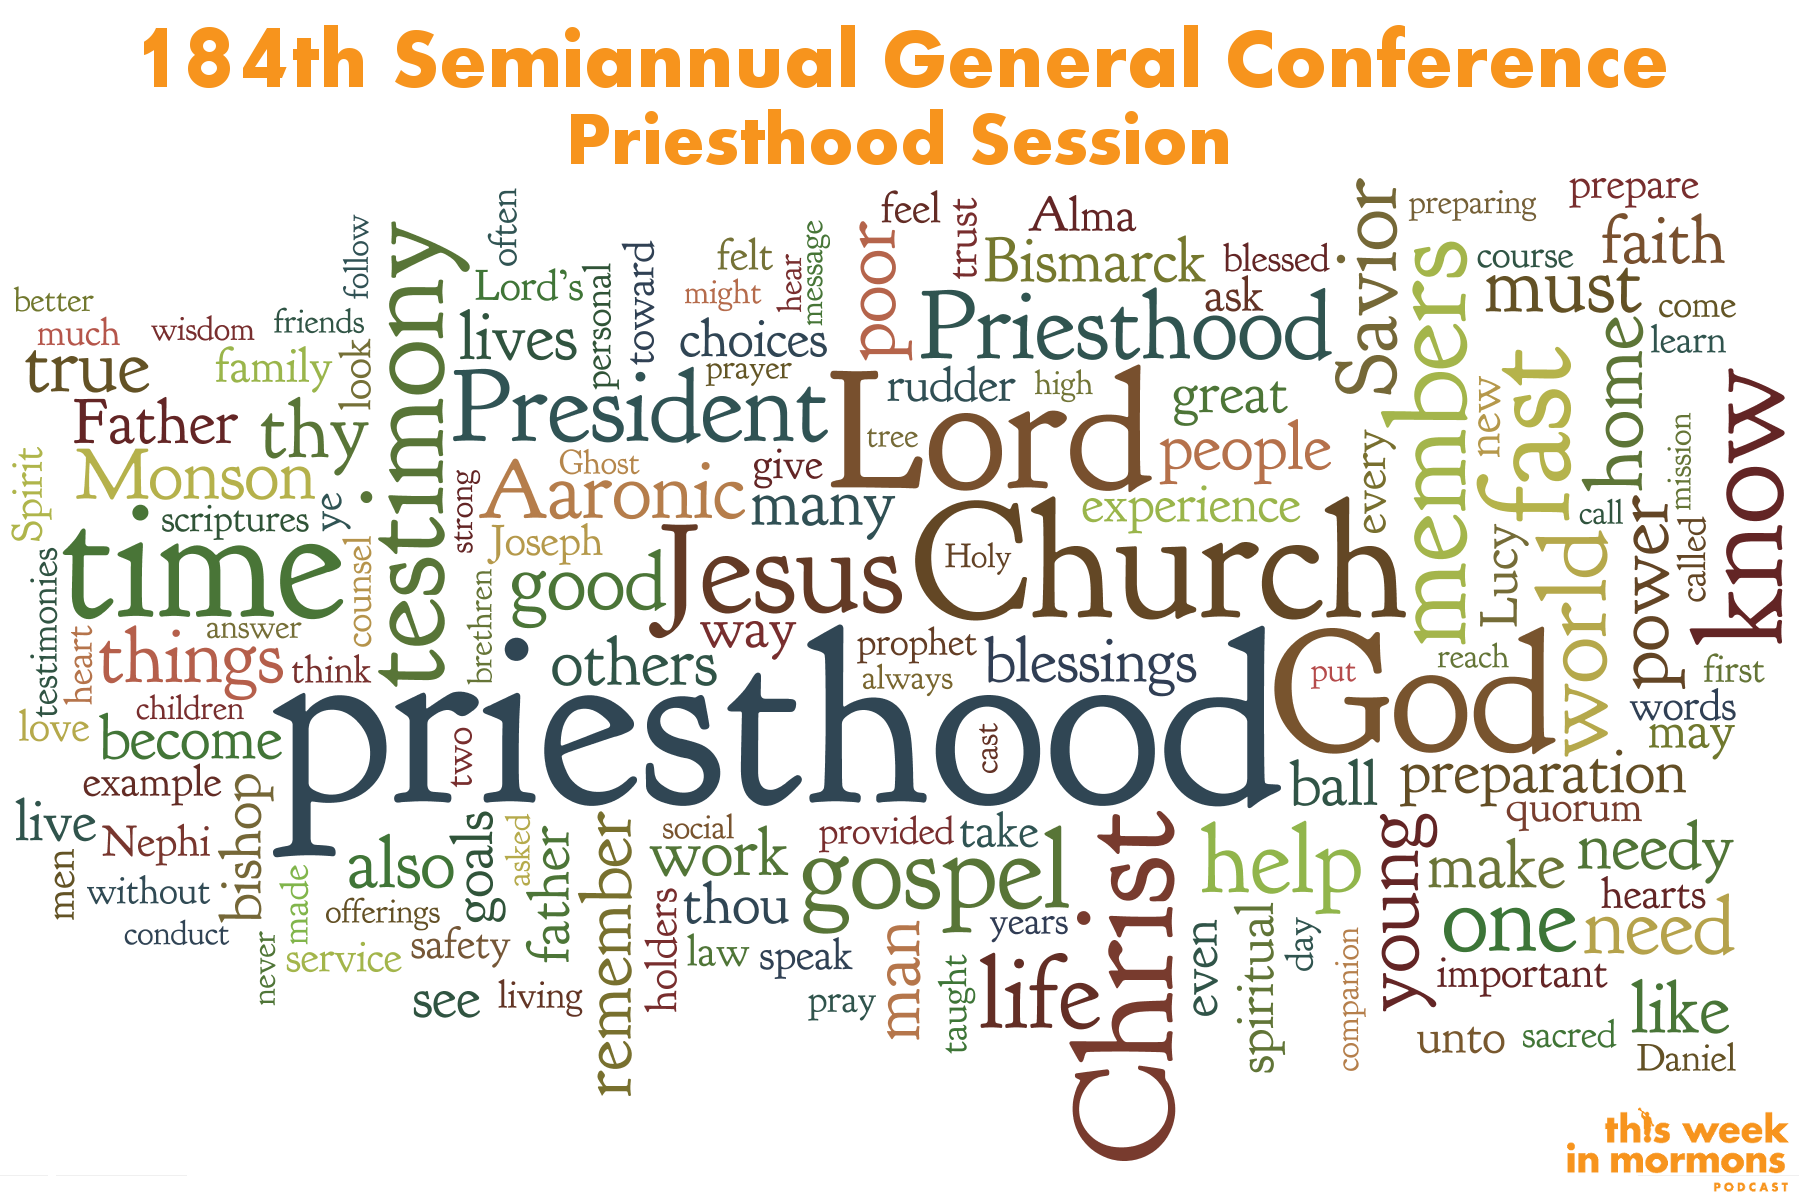 Priesthood SessionLDSCONF2014